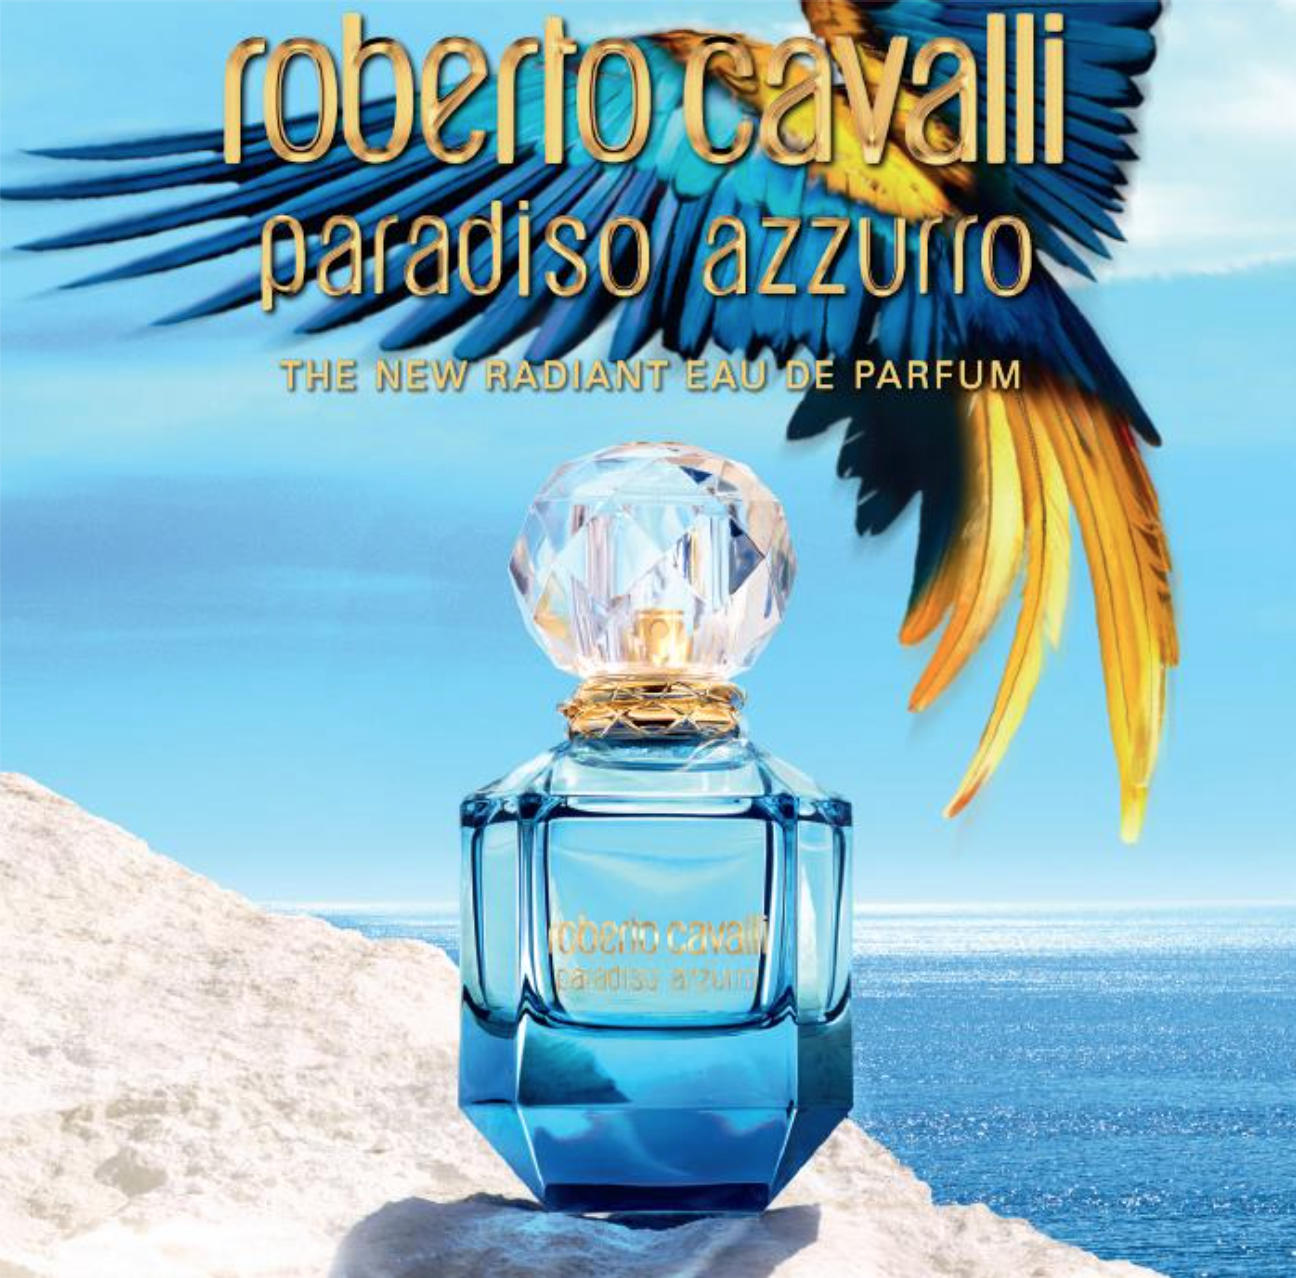 Paradiso Azzurro scent is the essence of Mediterranean nature: a luminous jasmine imprinted by a biting mandarin signature, underlined by warm luxurious cashmeran in the drydown.